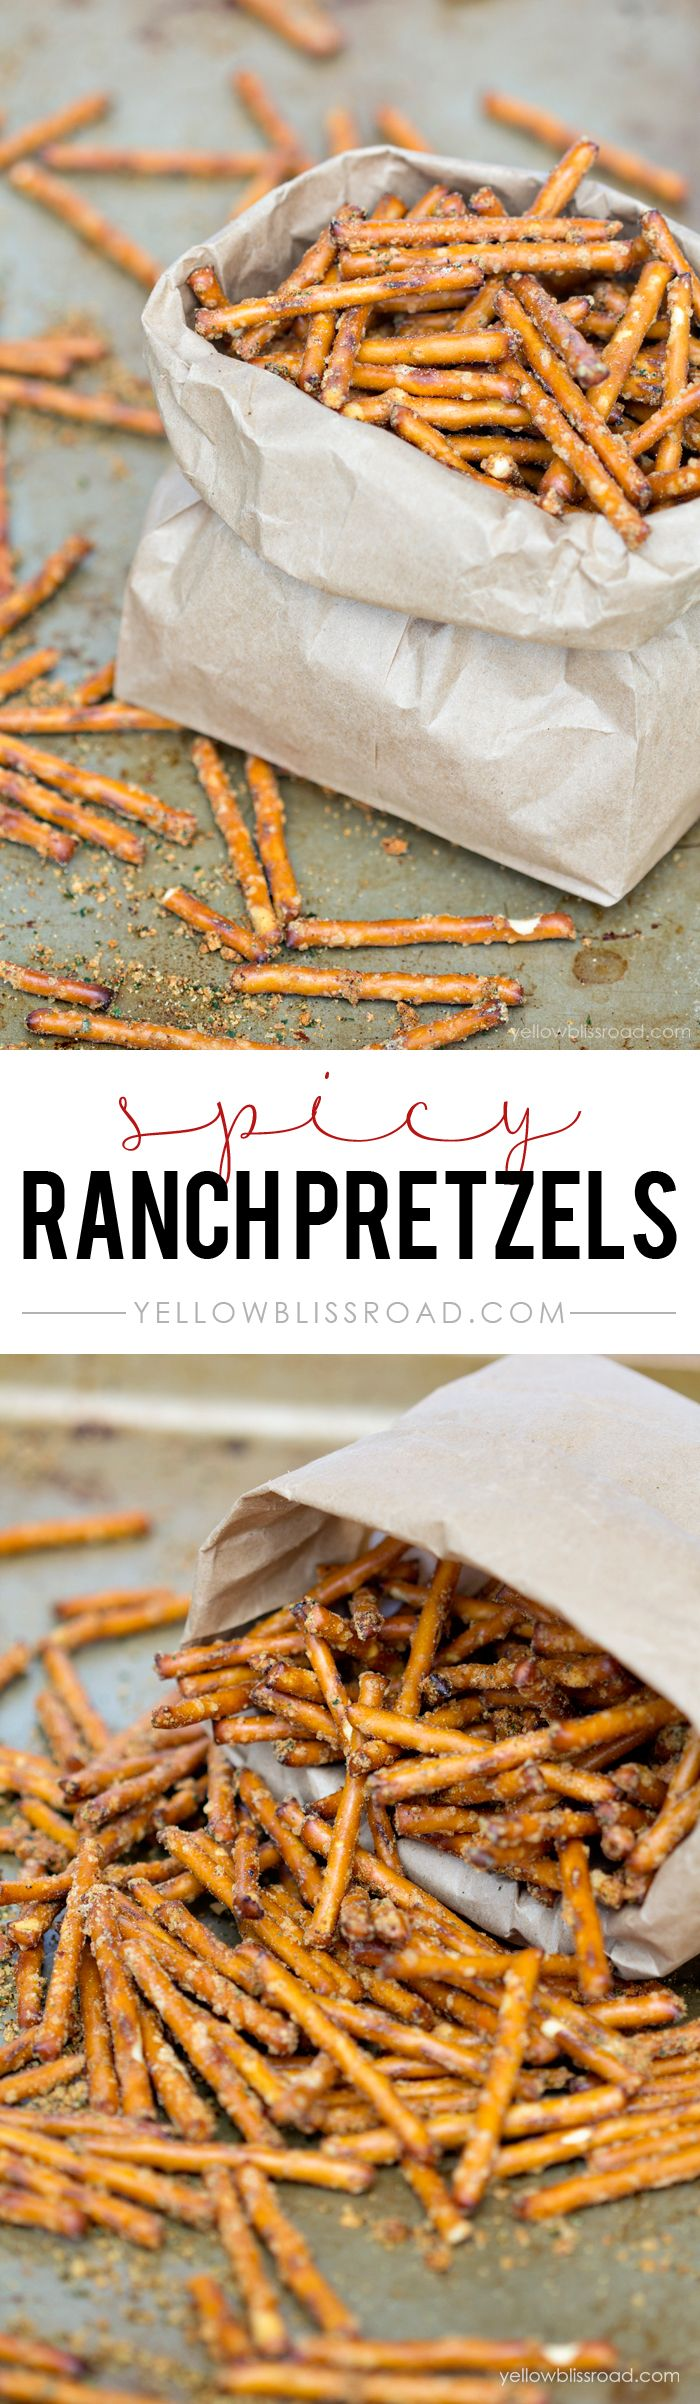 Spicy Ranch Flavored Pretzels - A quick and easy snack